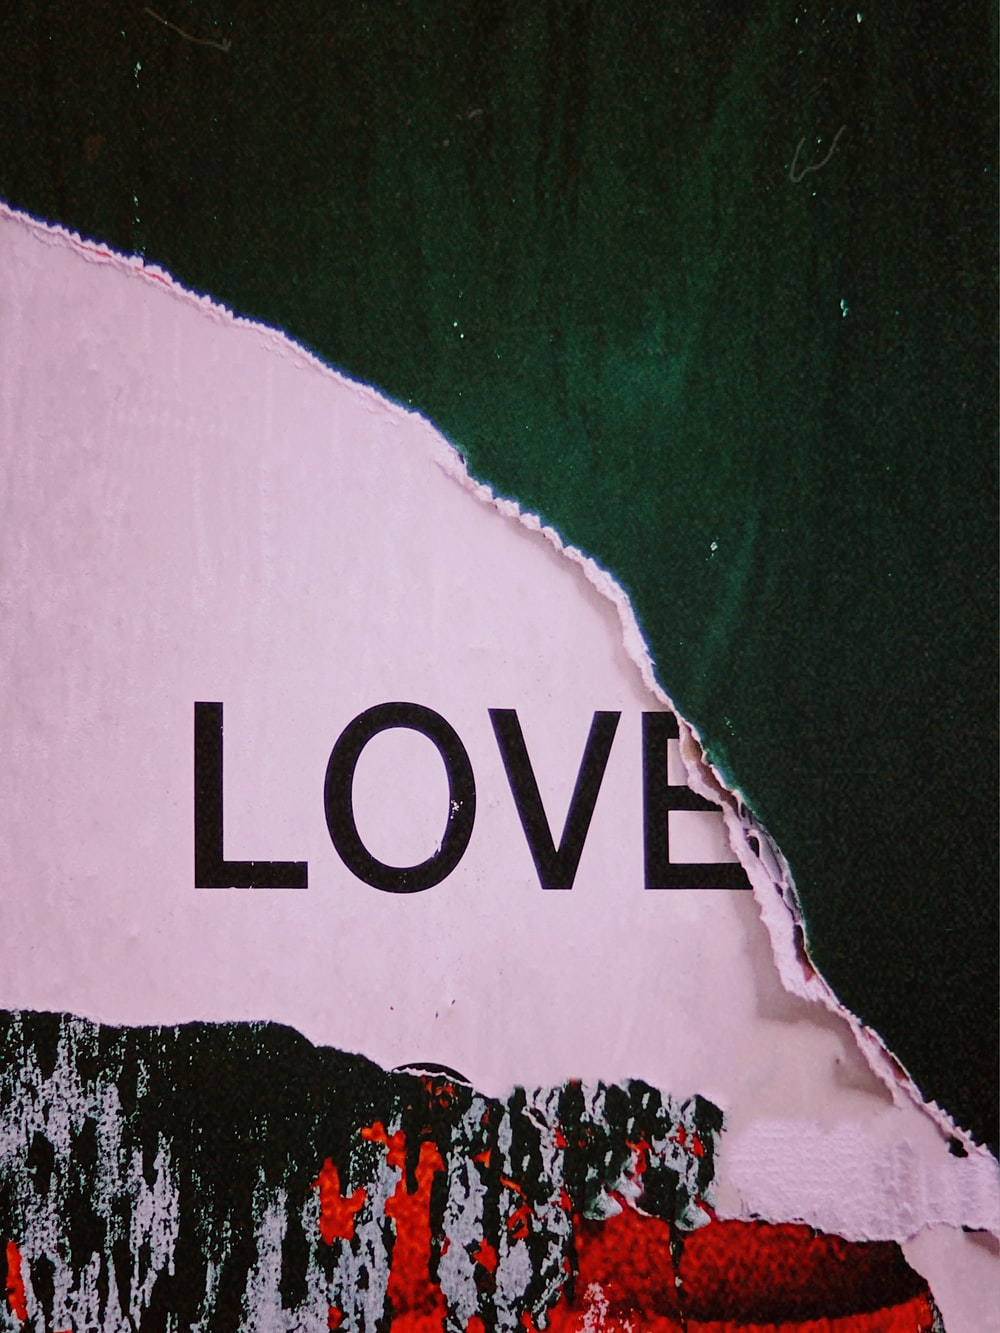 love text under green and red paper